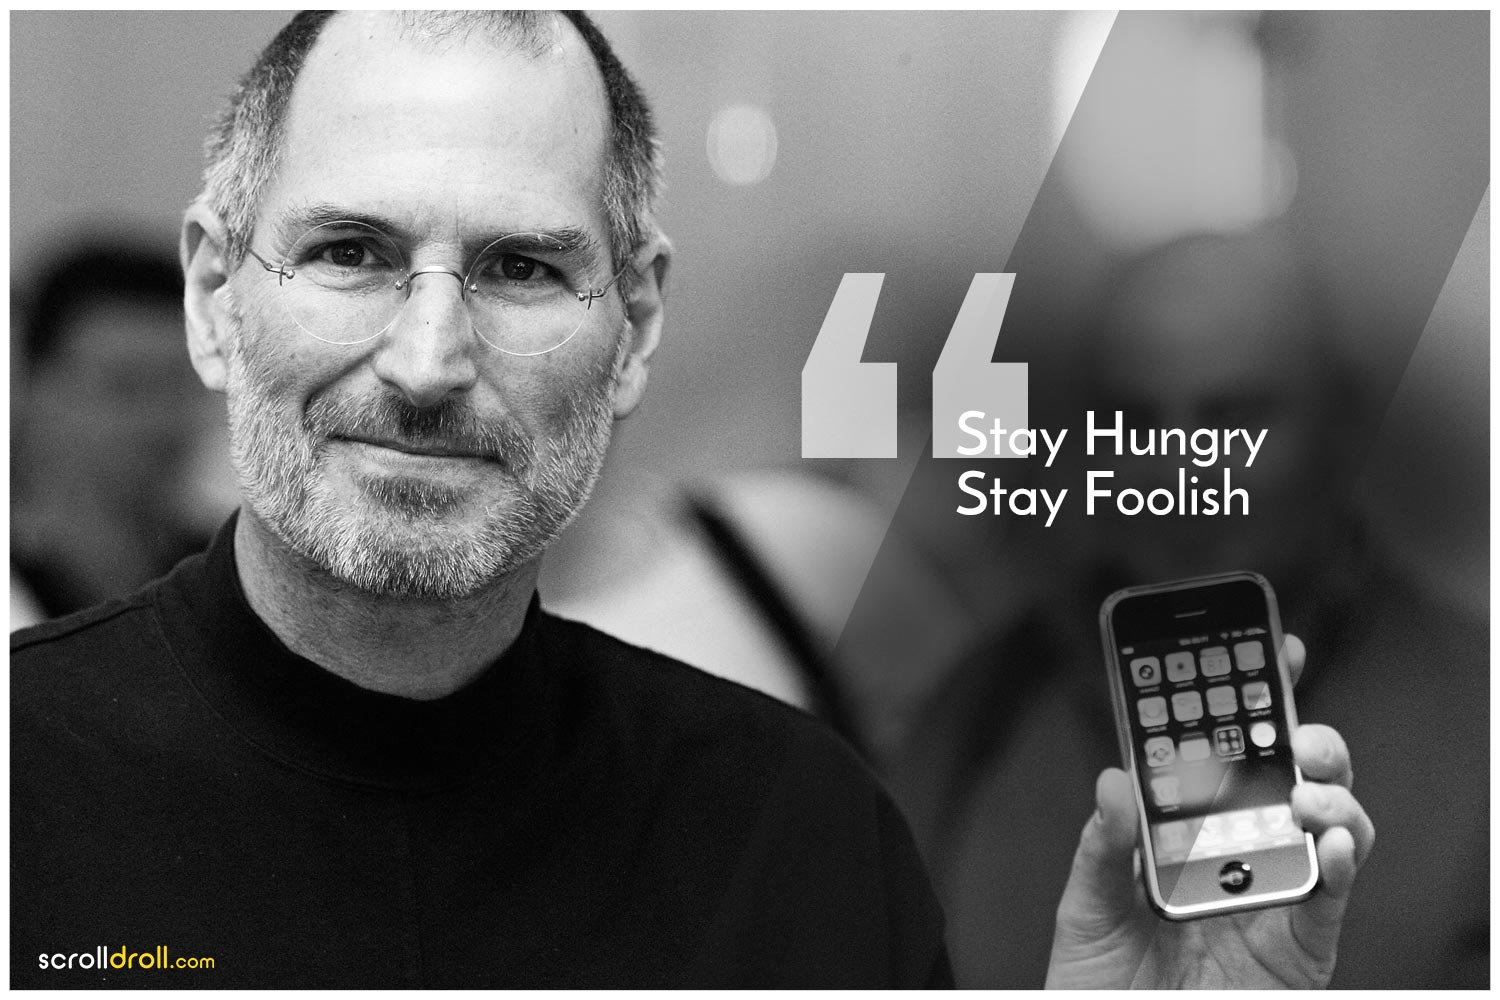 -Steve Jobs Quotes- Stay Hungry Stay Foolish